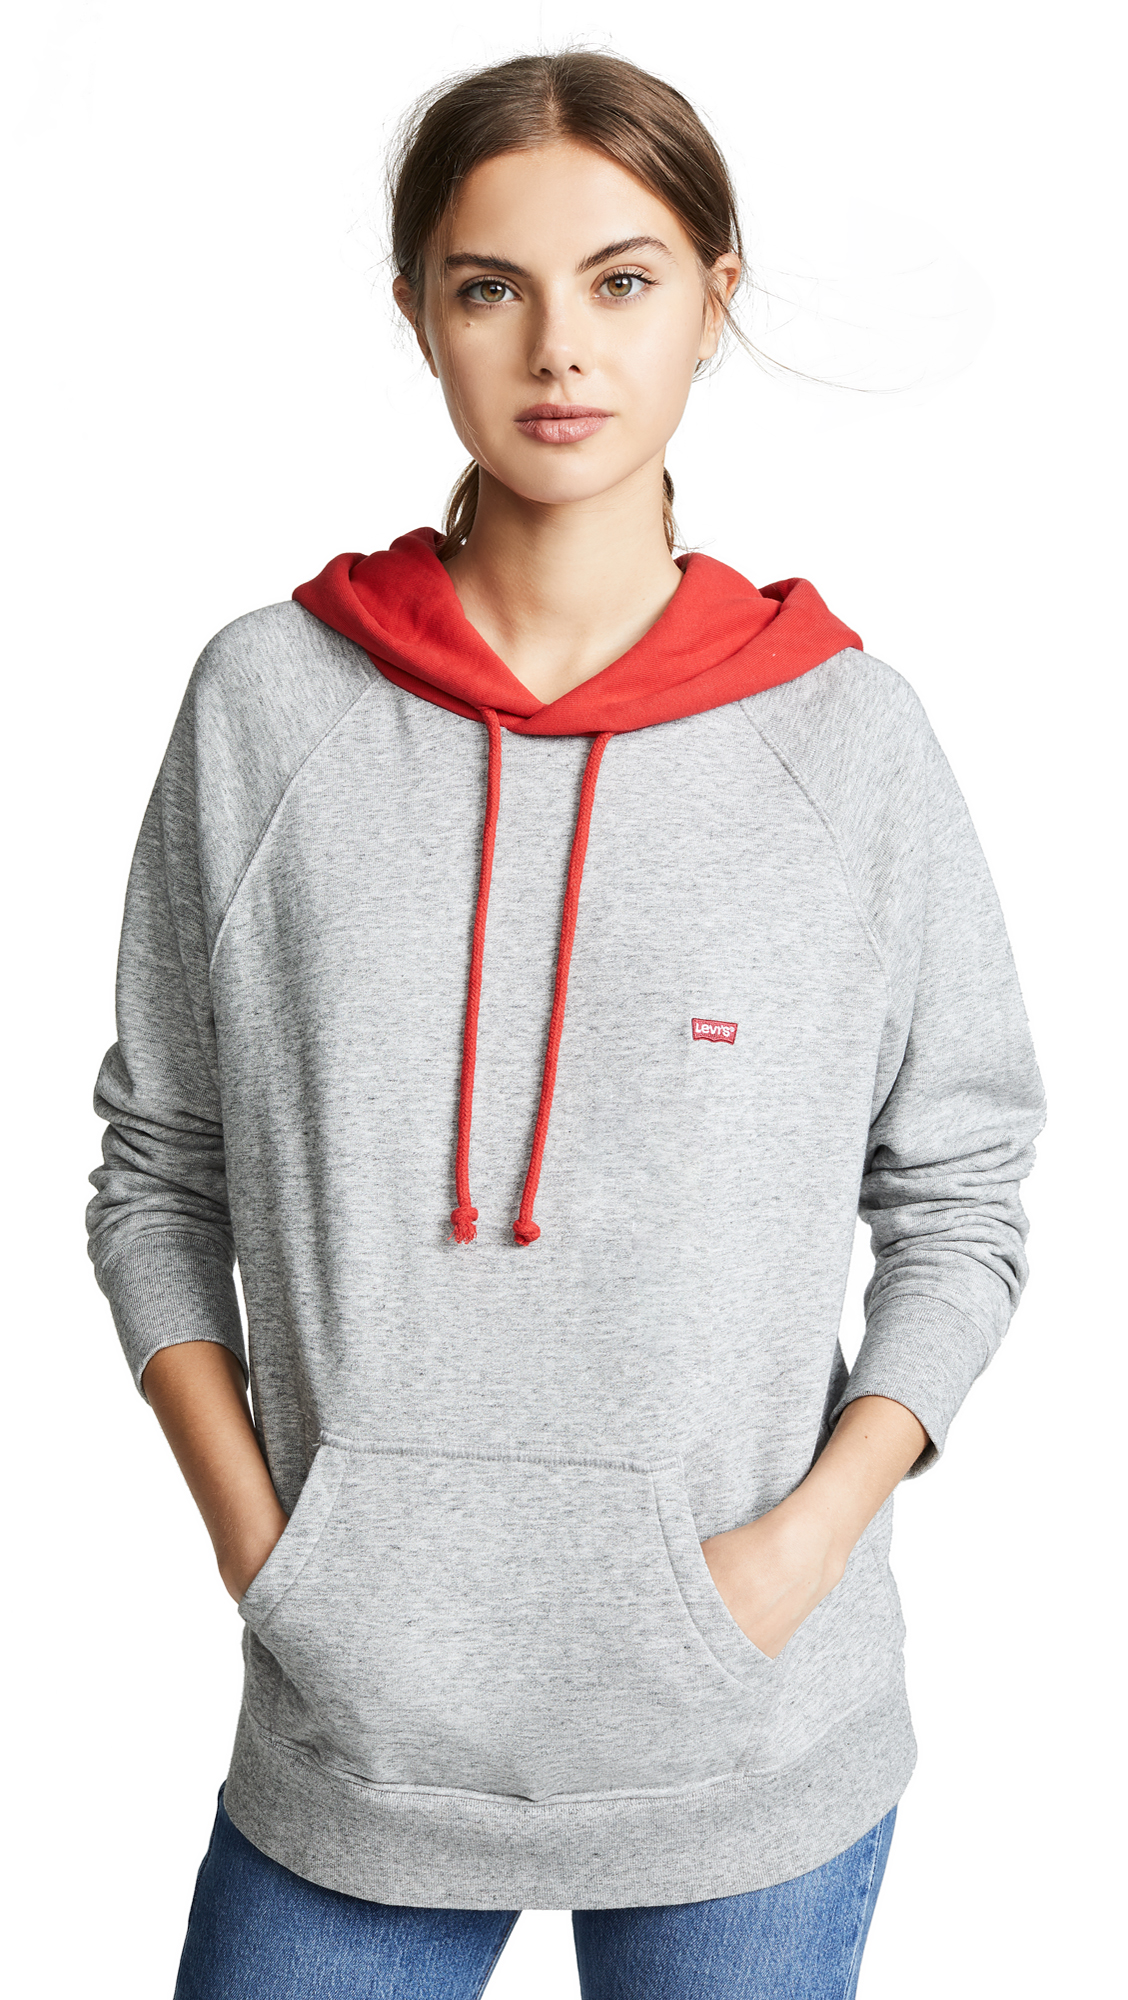 Levi's Sportswear Hoodie In Smokestack Heather